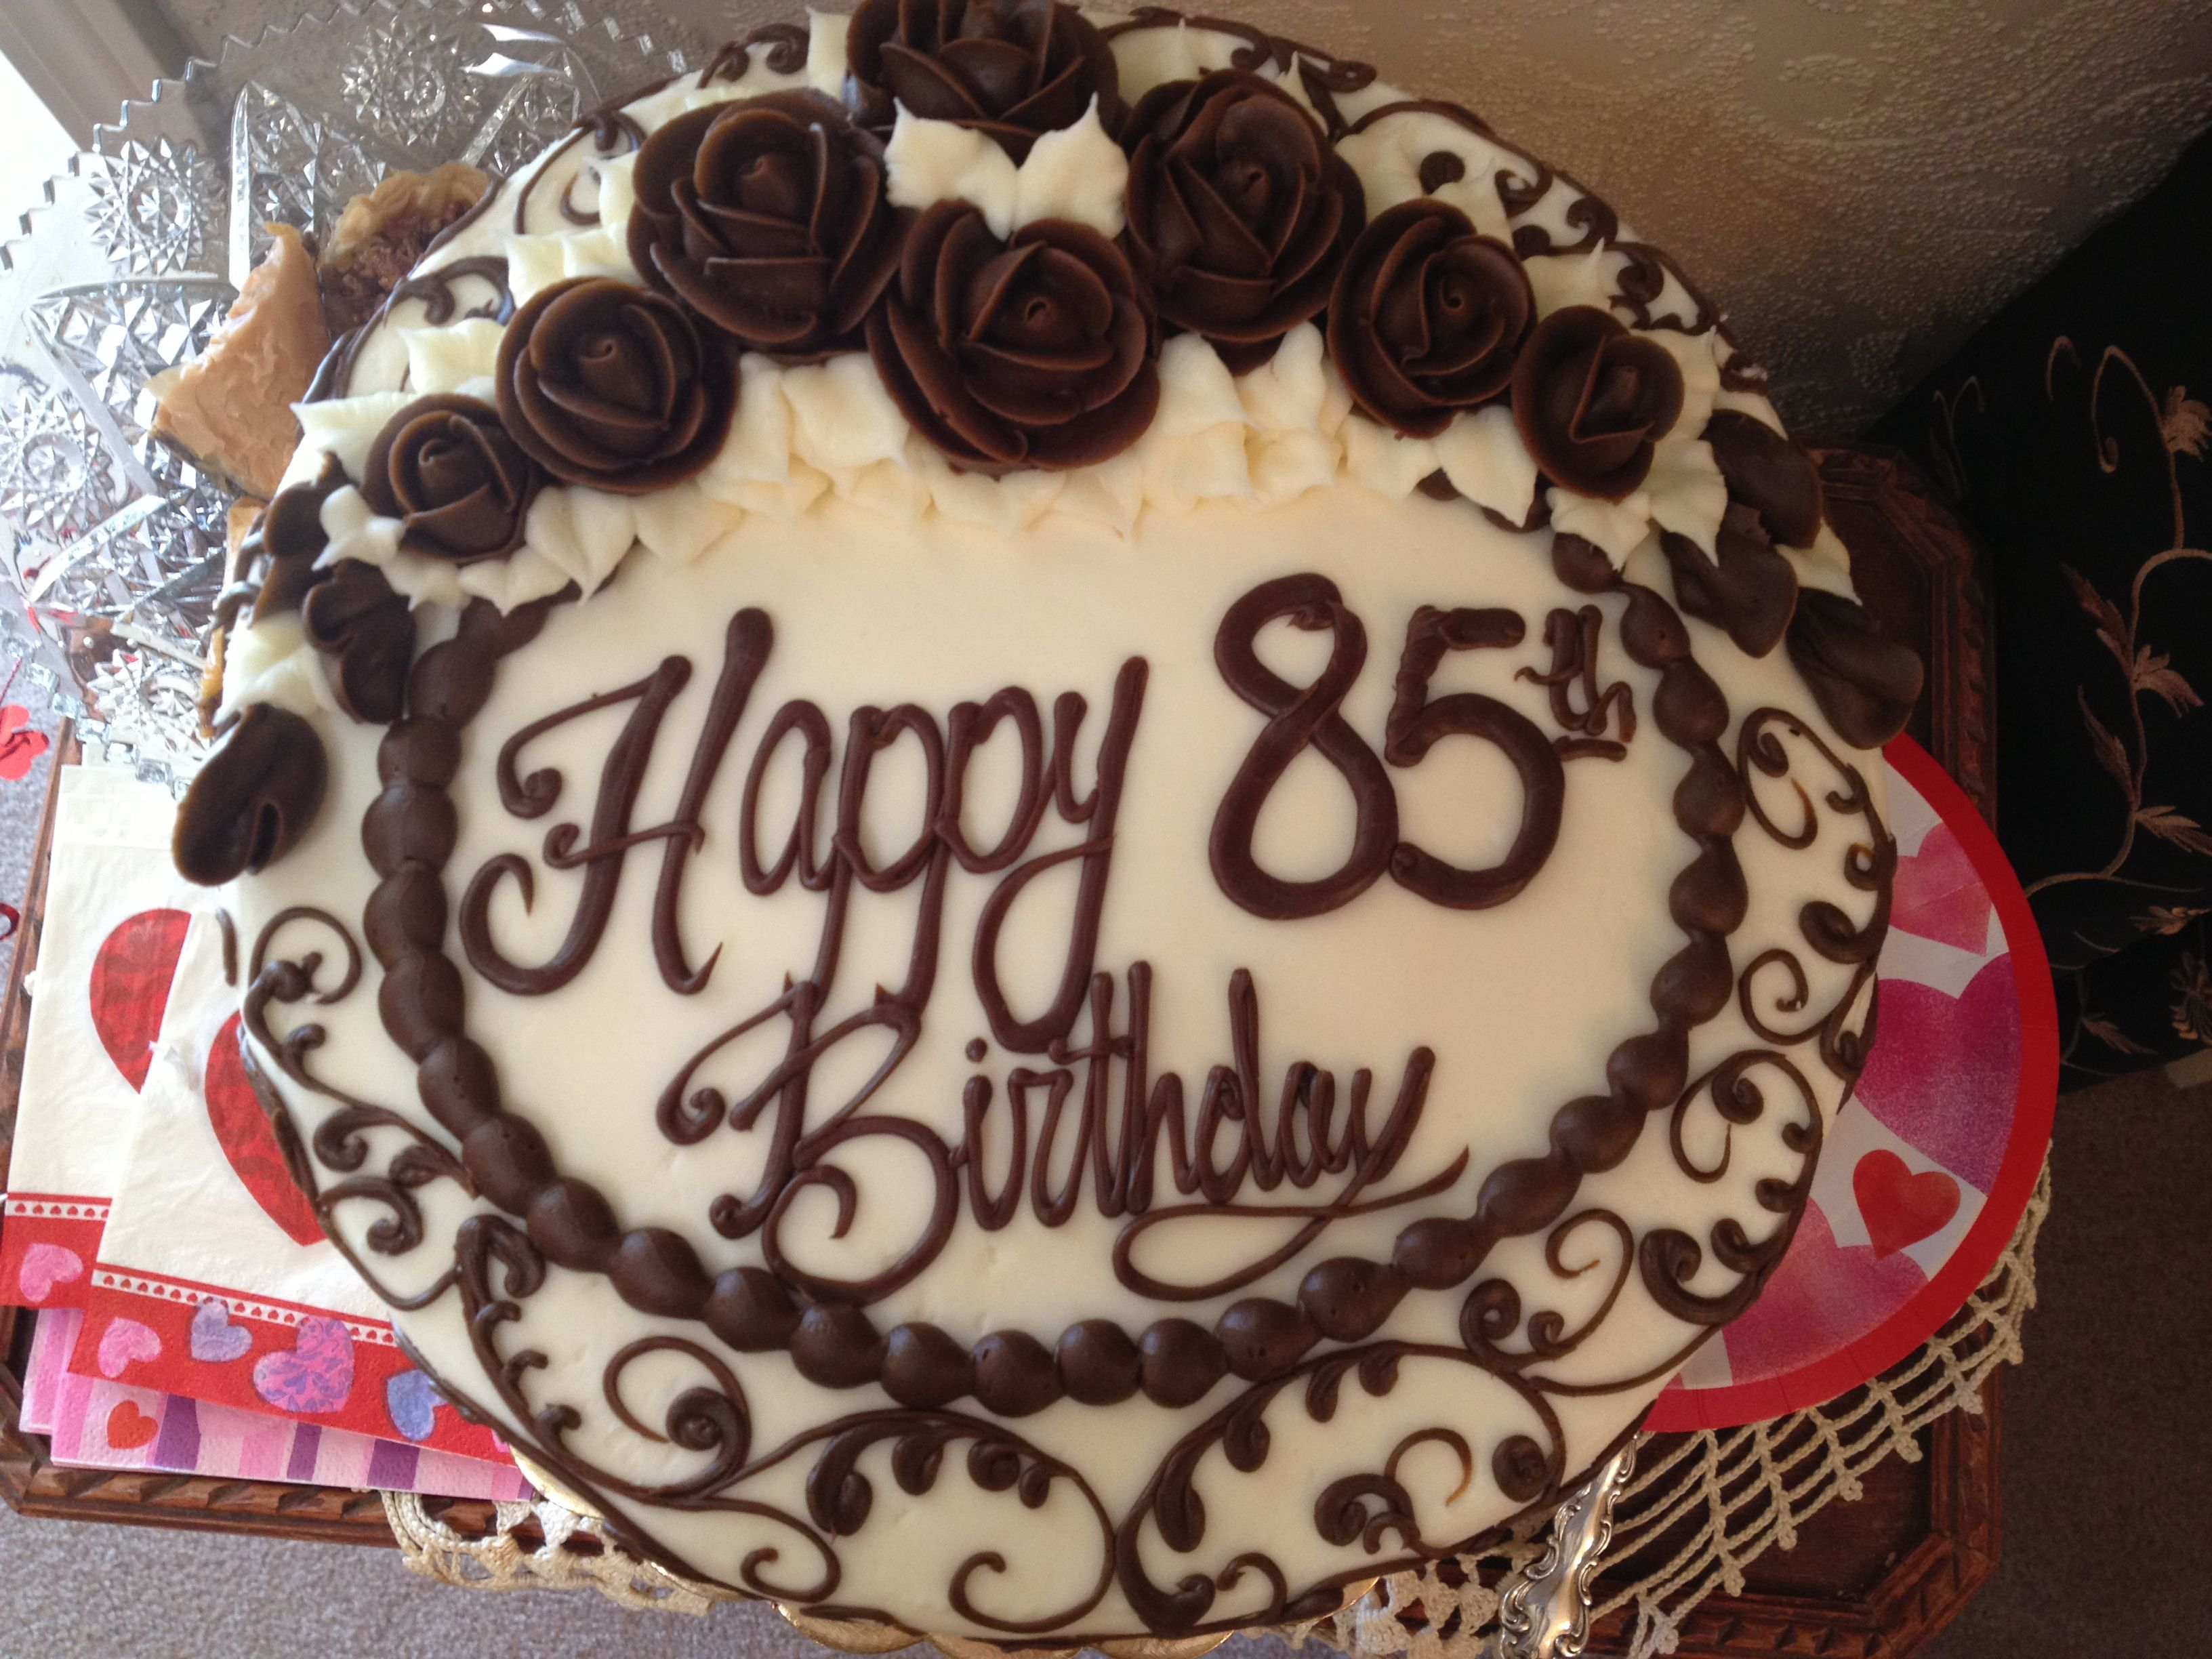 Beautiful 85th Birthday Cake